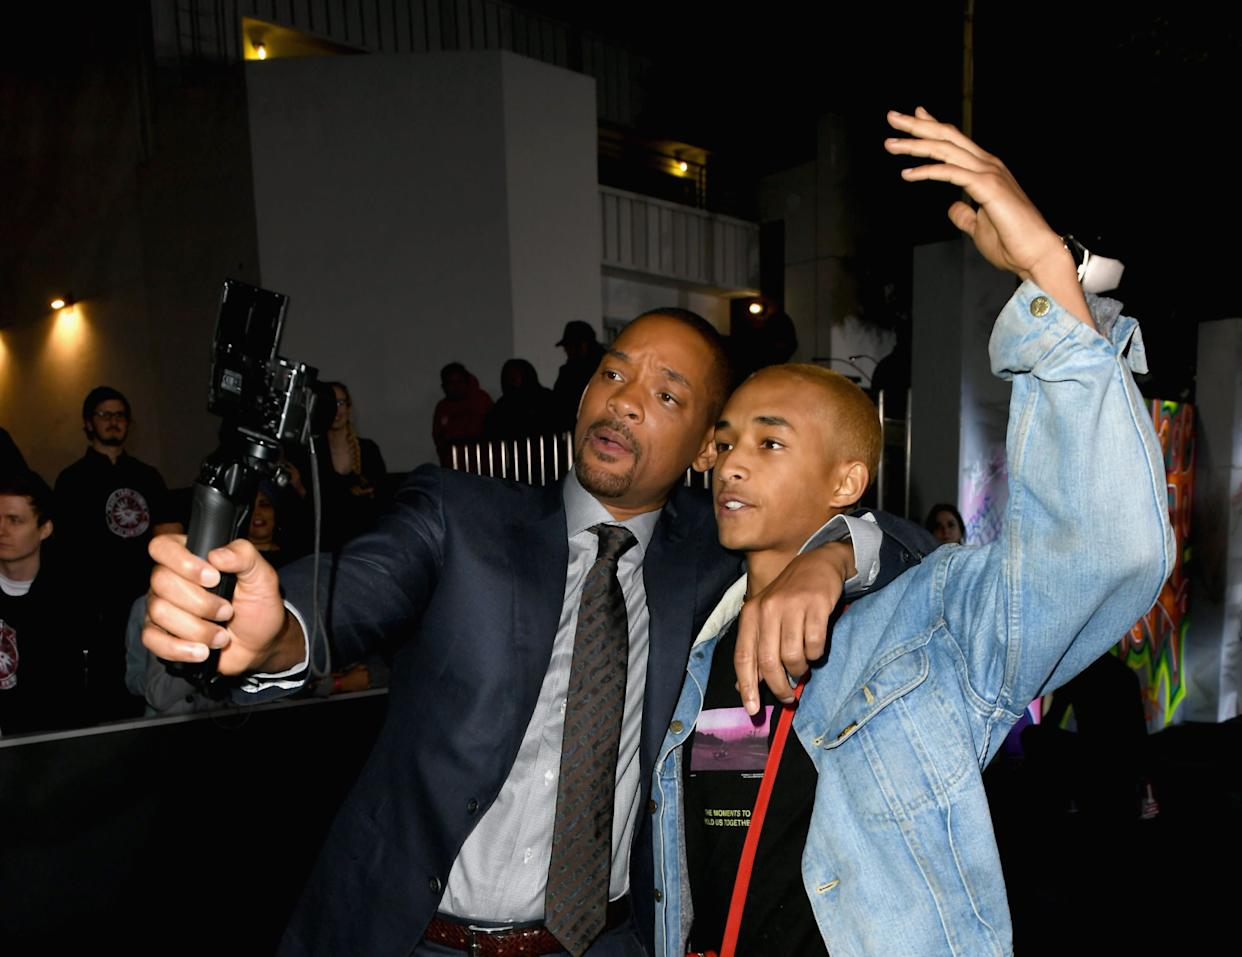 WESTWOOD, CA - DECEMBER 13: Will Smith and Jaden Smith attend the Premiere Of Netflix's 'Bright' at Regency Village Theatre on December 13, 2017 in Westwood, California. (Photo by Kevin Winter/Getty Images)